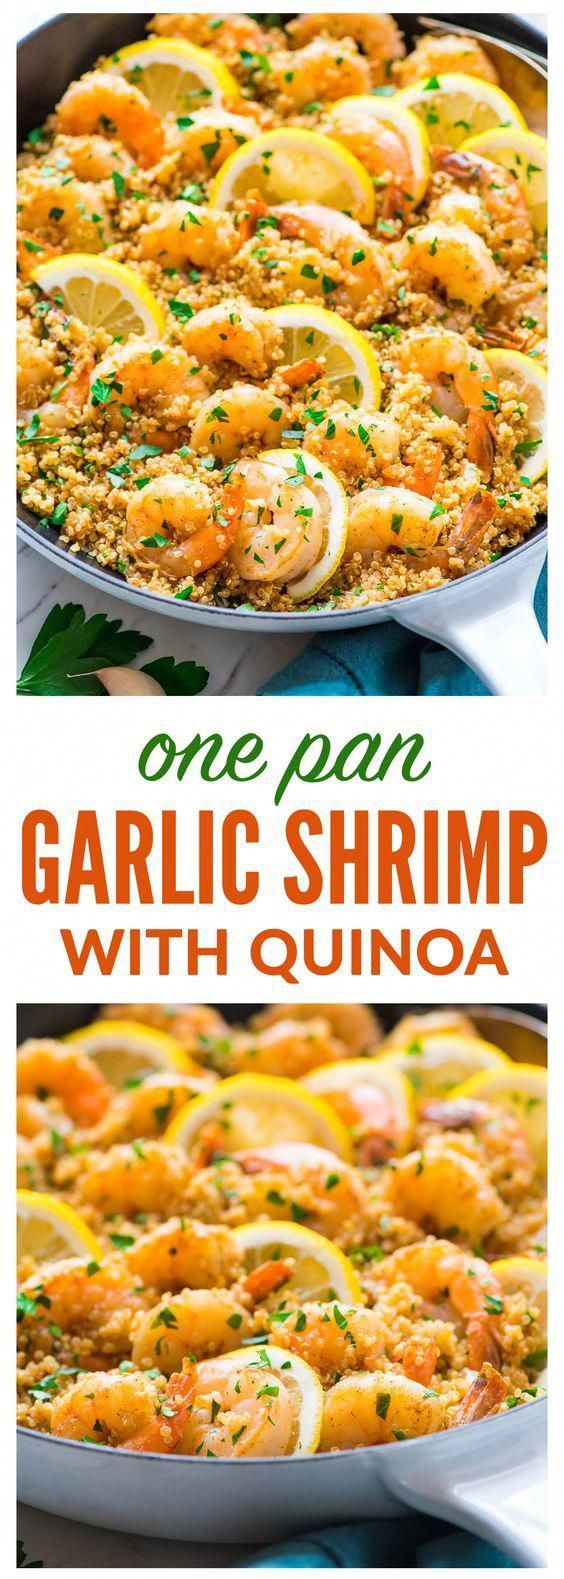 Photo of Garlic Shrimp with Quinoa